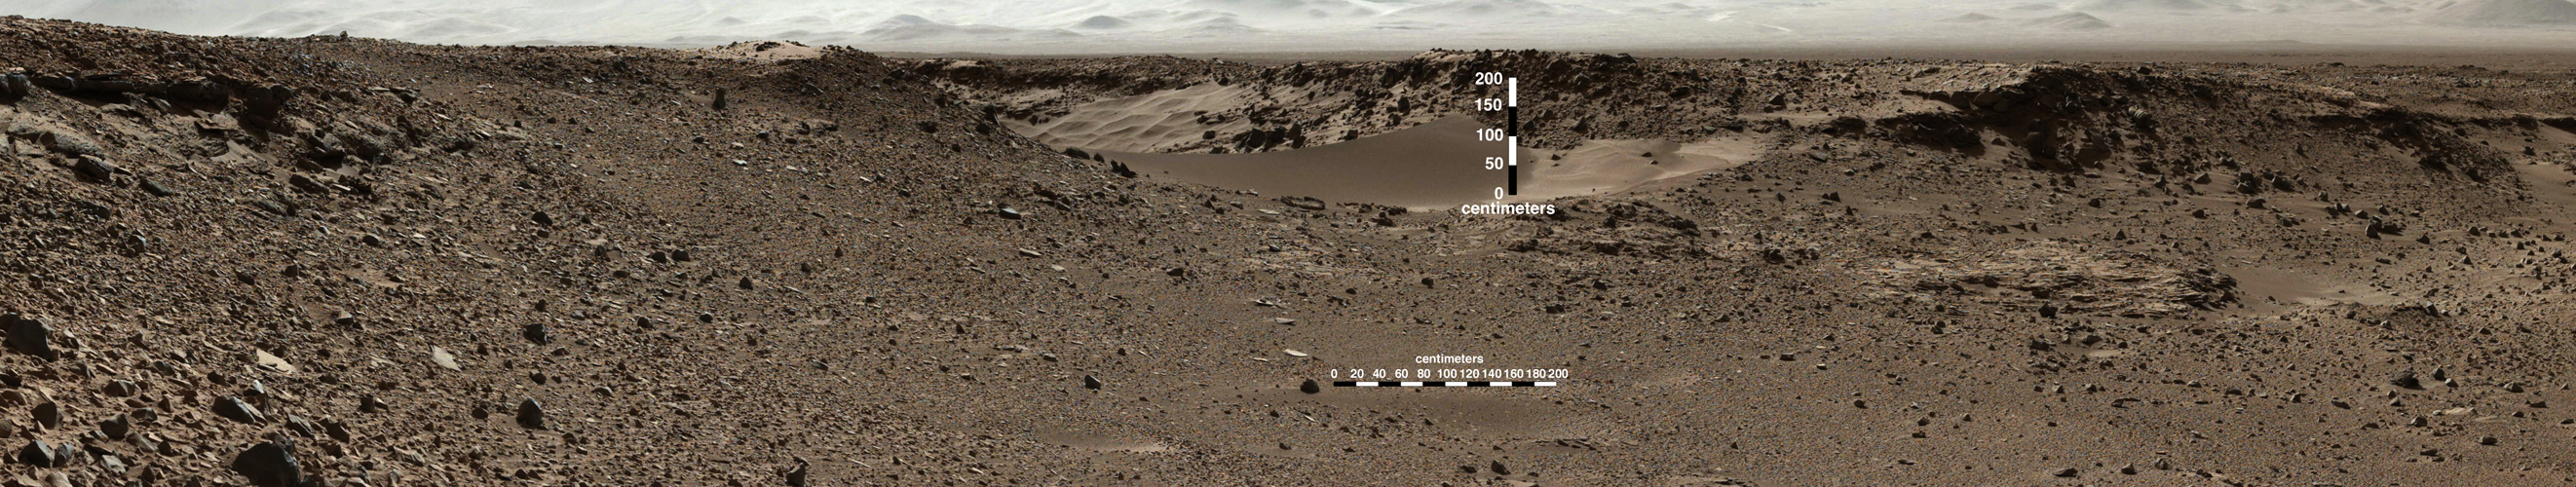 Curiosity Mars Rover Approaches 'Dingo Gap'